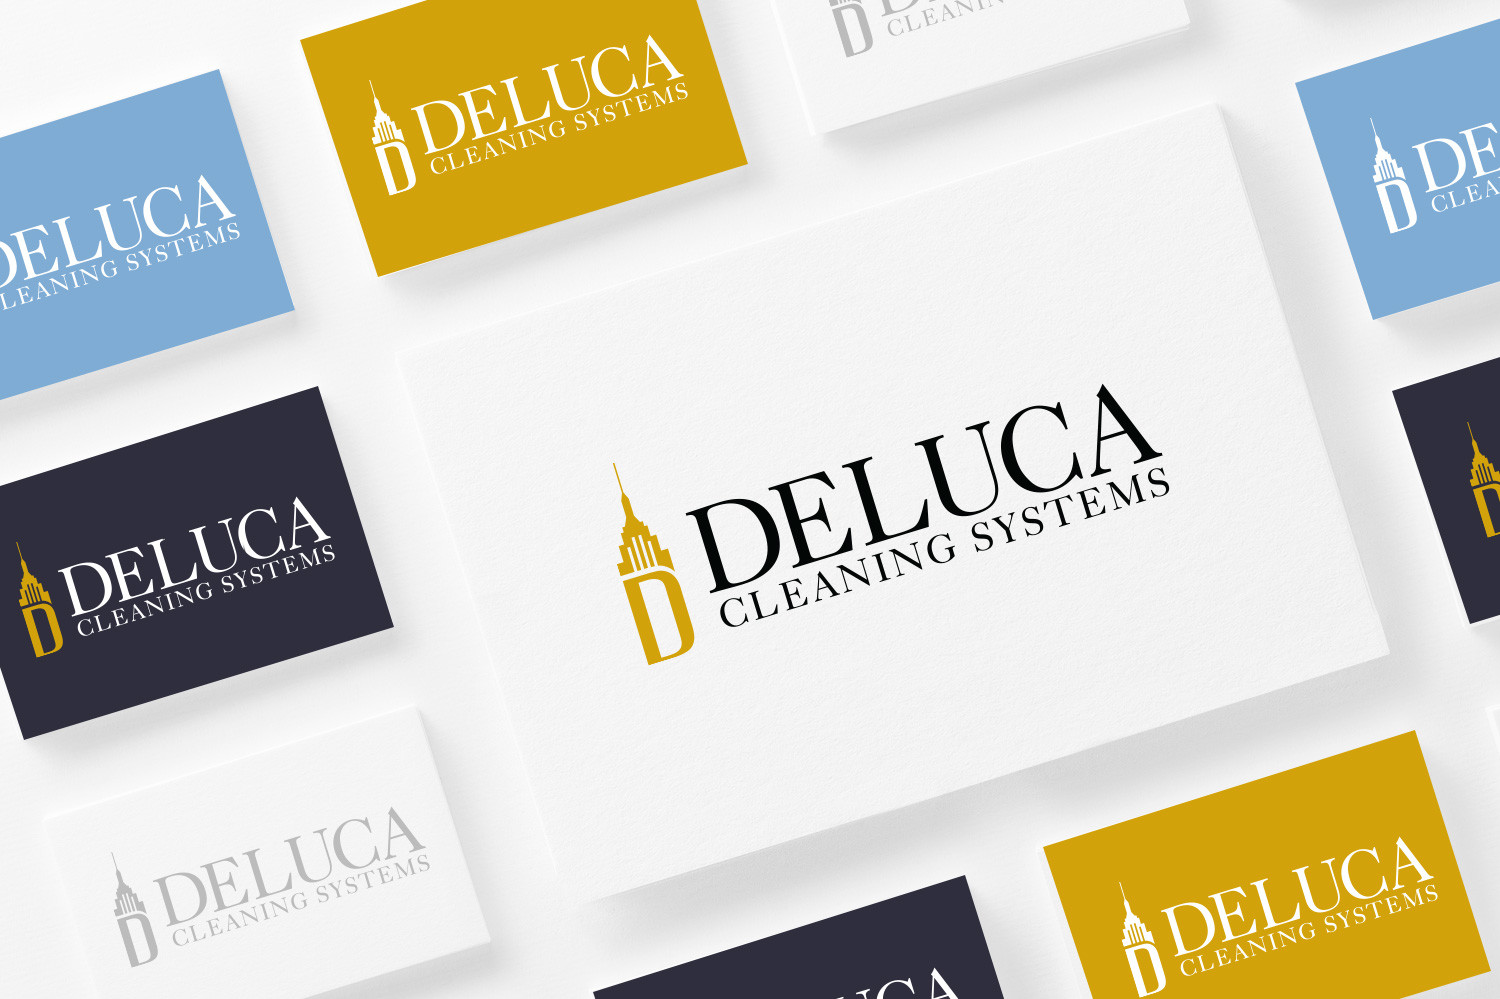 DelucaCleaning_CorporateIdentity